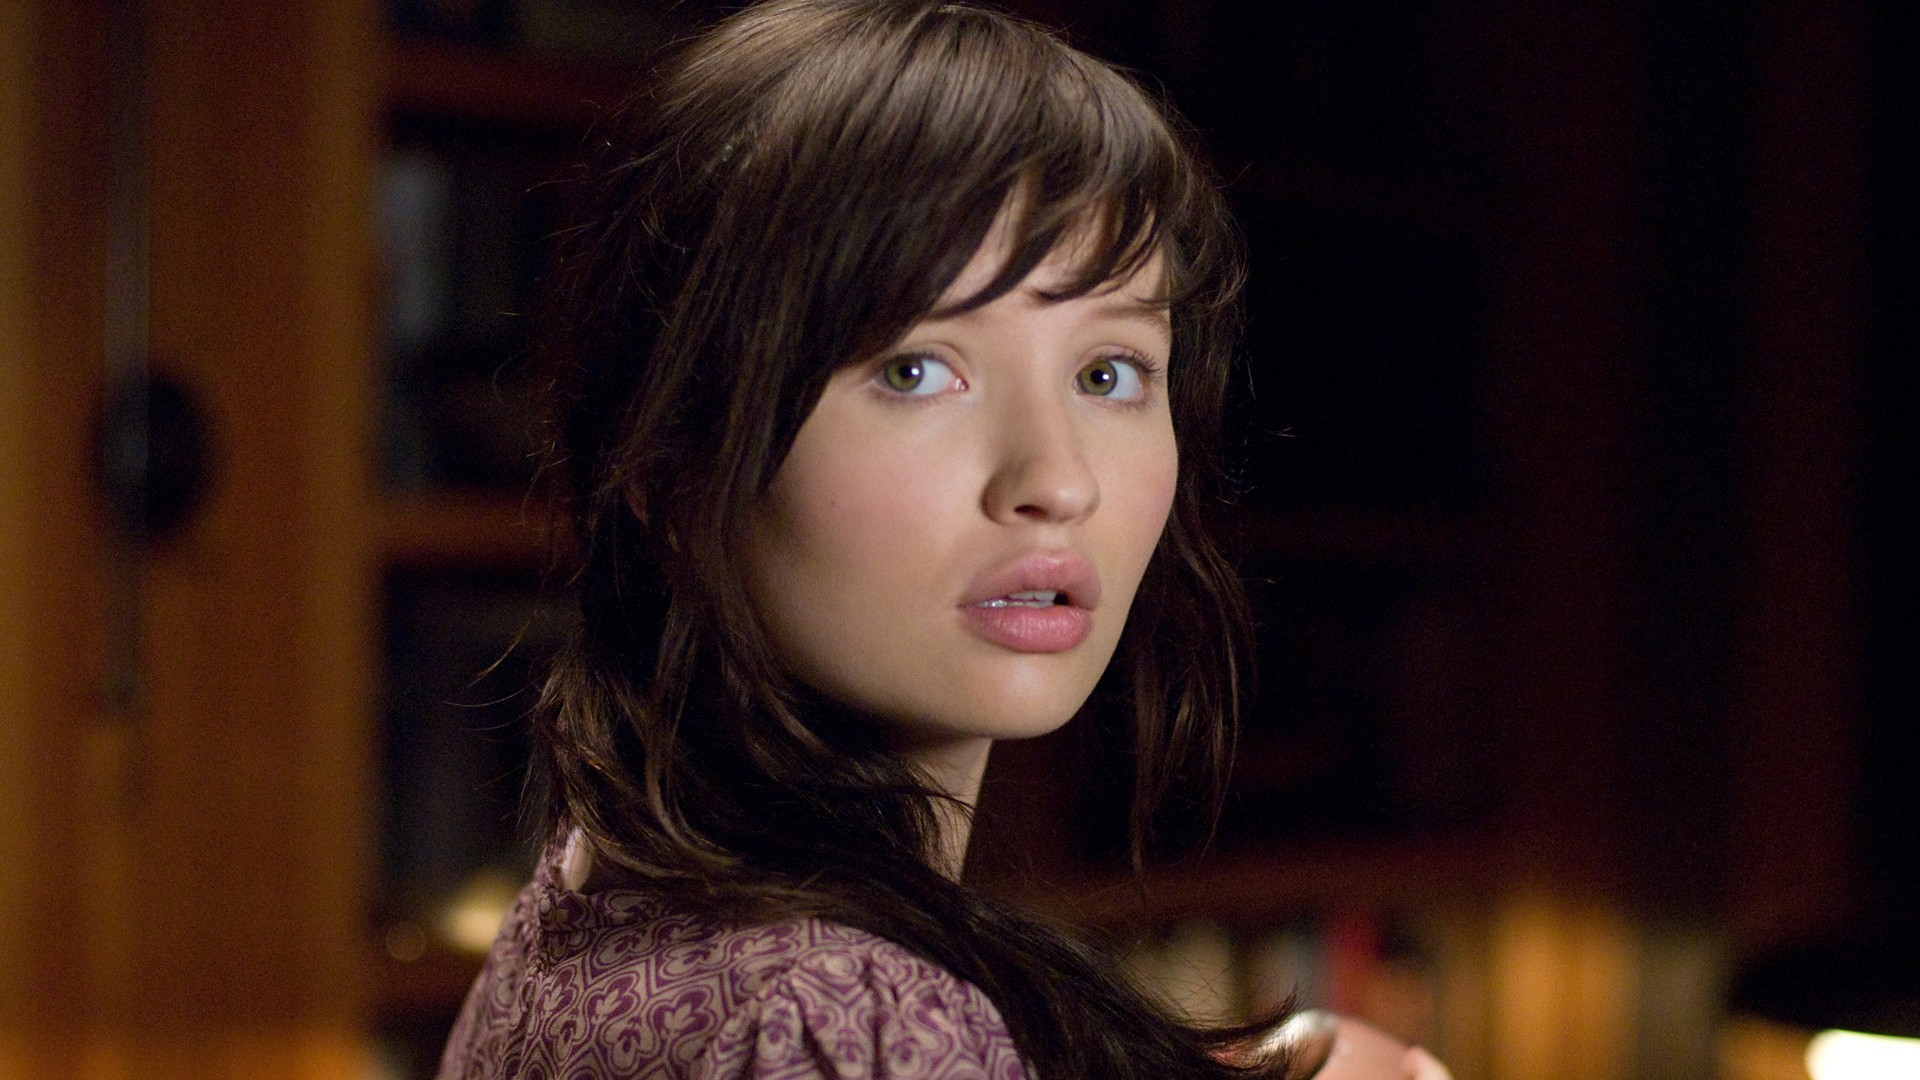 Emily Browning Wallpapers Images Photos